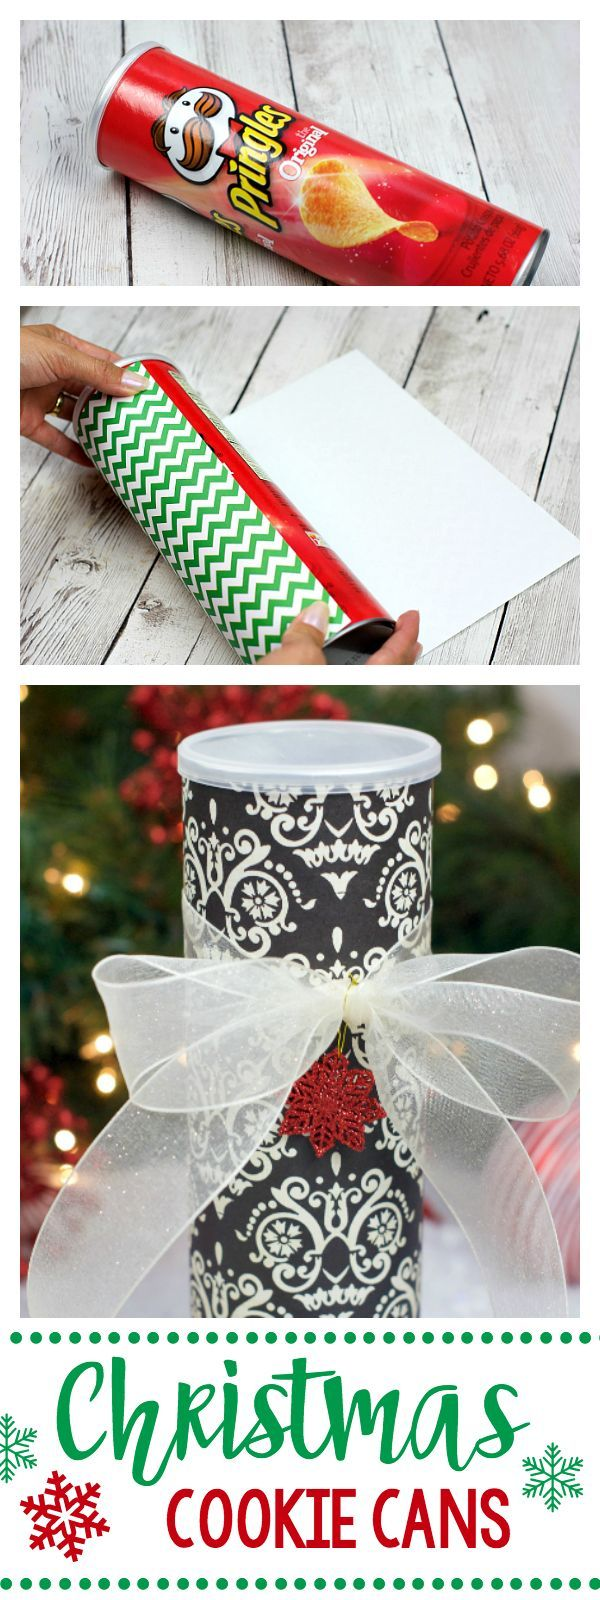 Diy christmas decorations and gifts - Fun Creative Christmas Cookie Containers